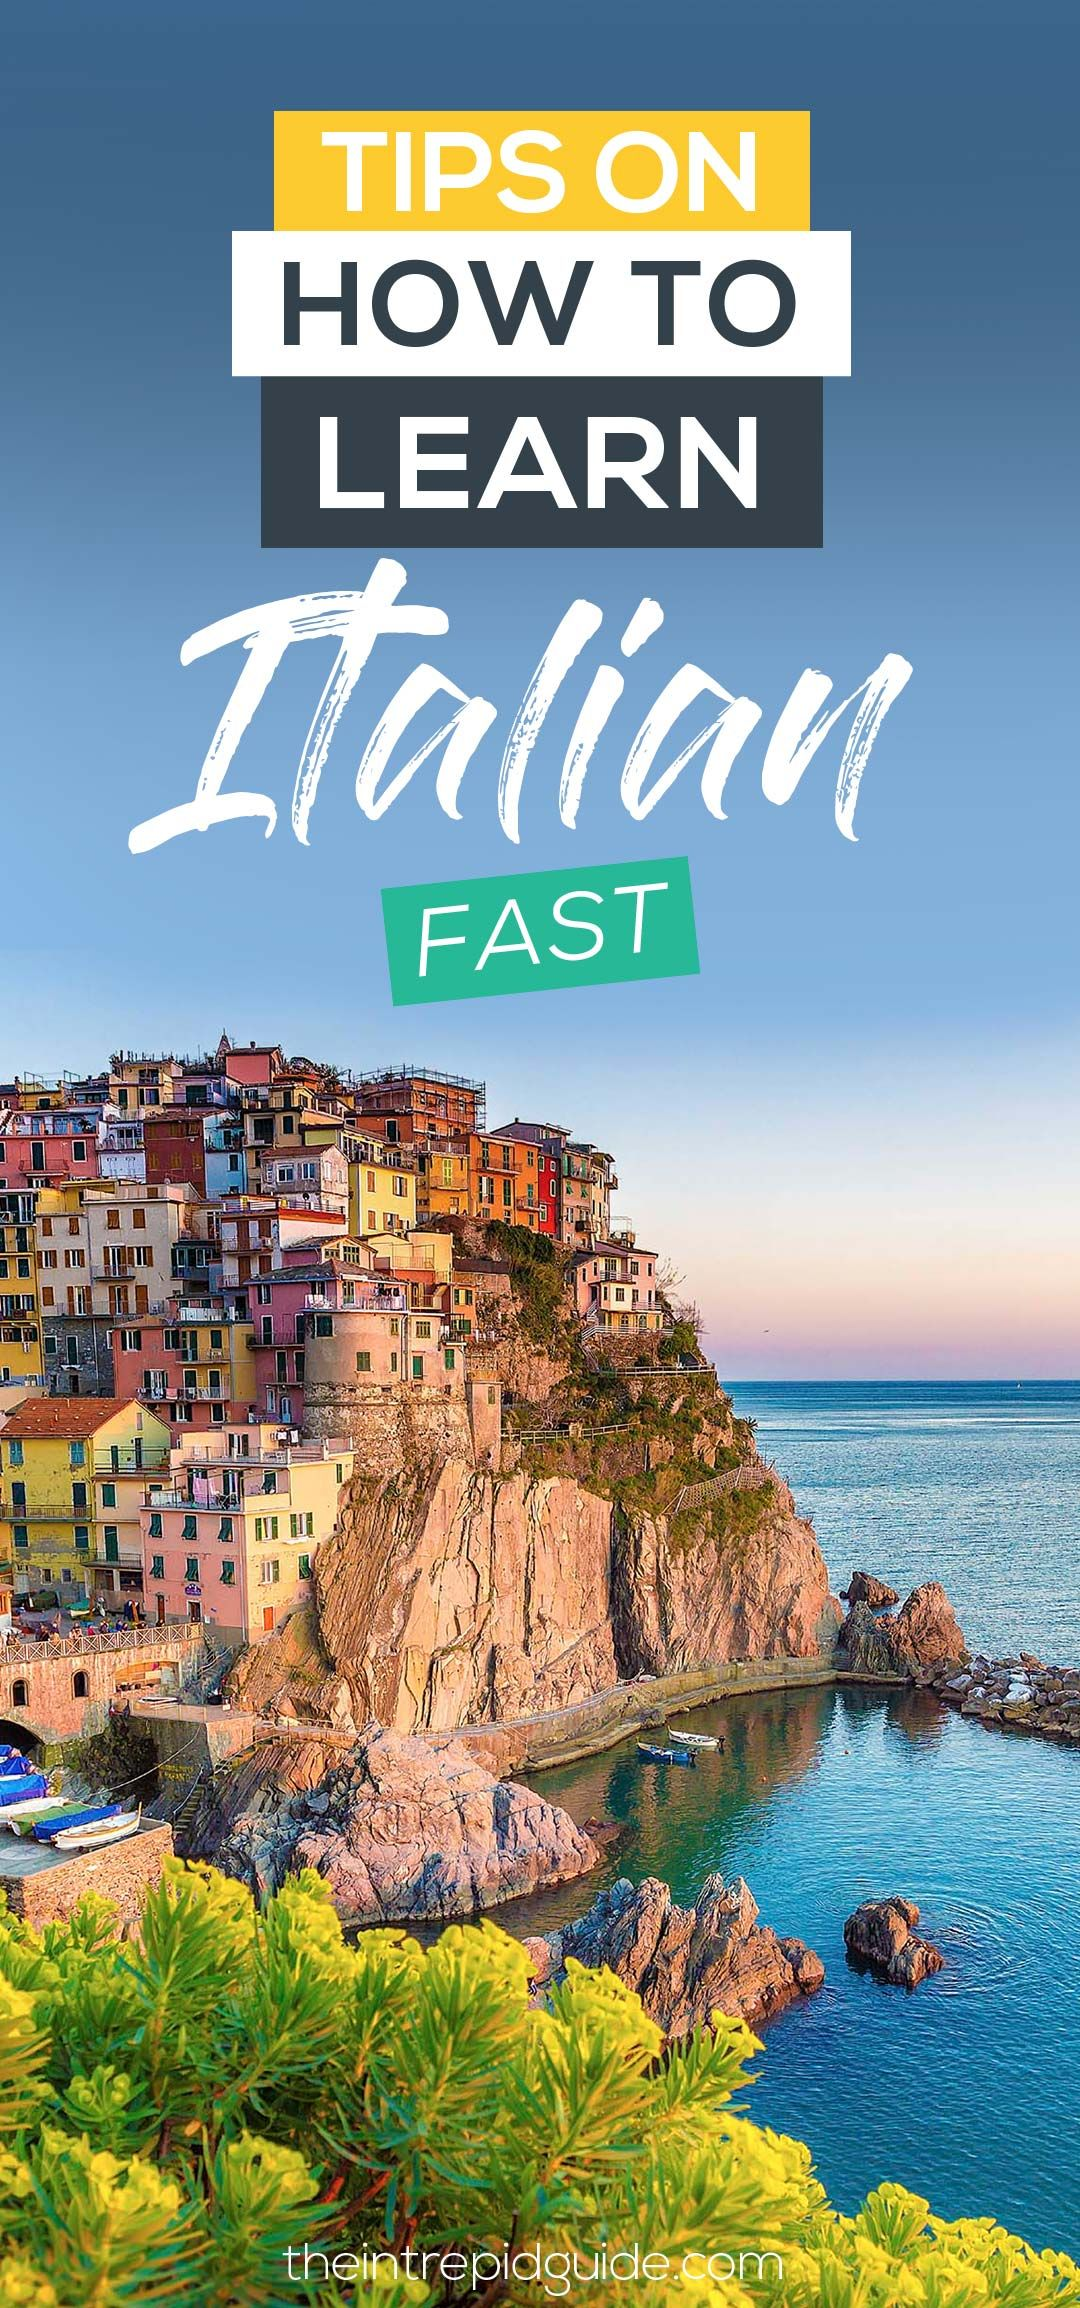 How to Learn Italian FAST in 8 Hours: Pro Tips for Fluency #spanishthings